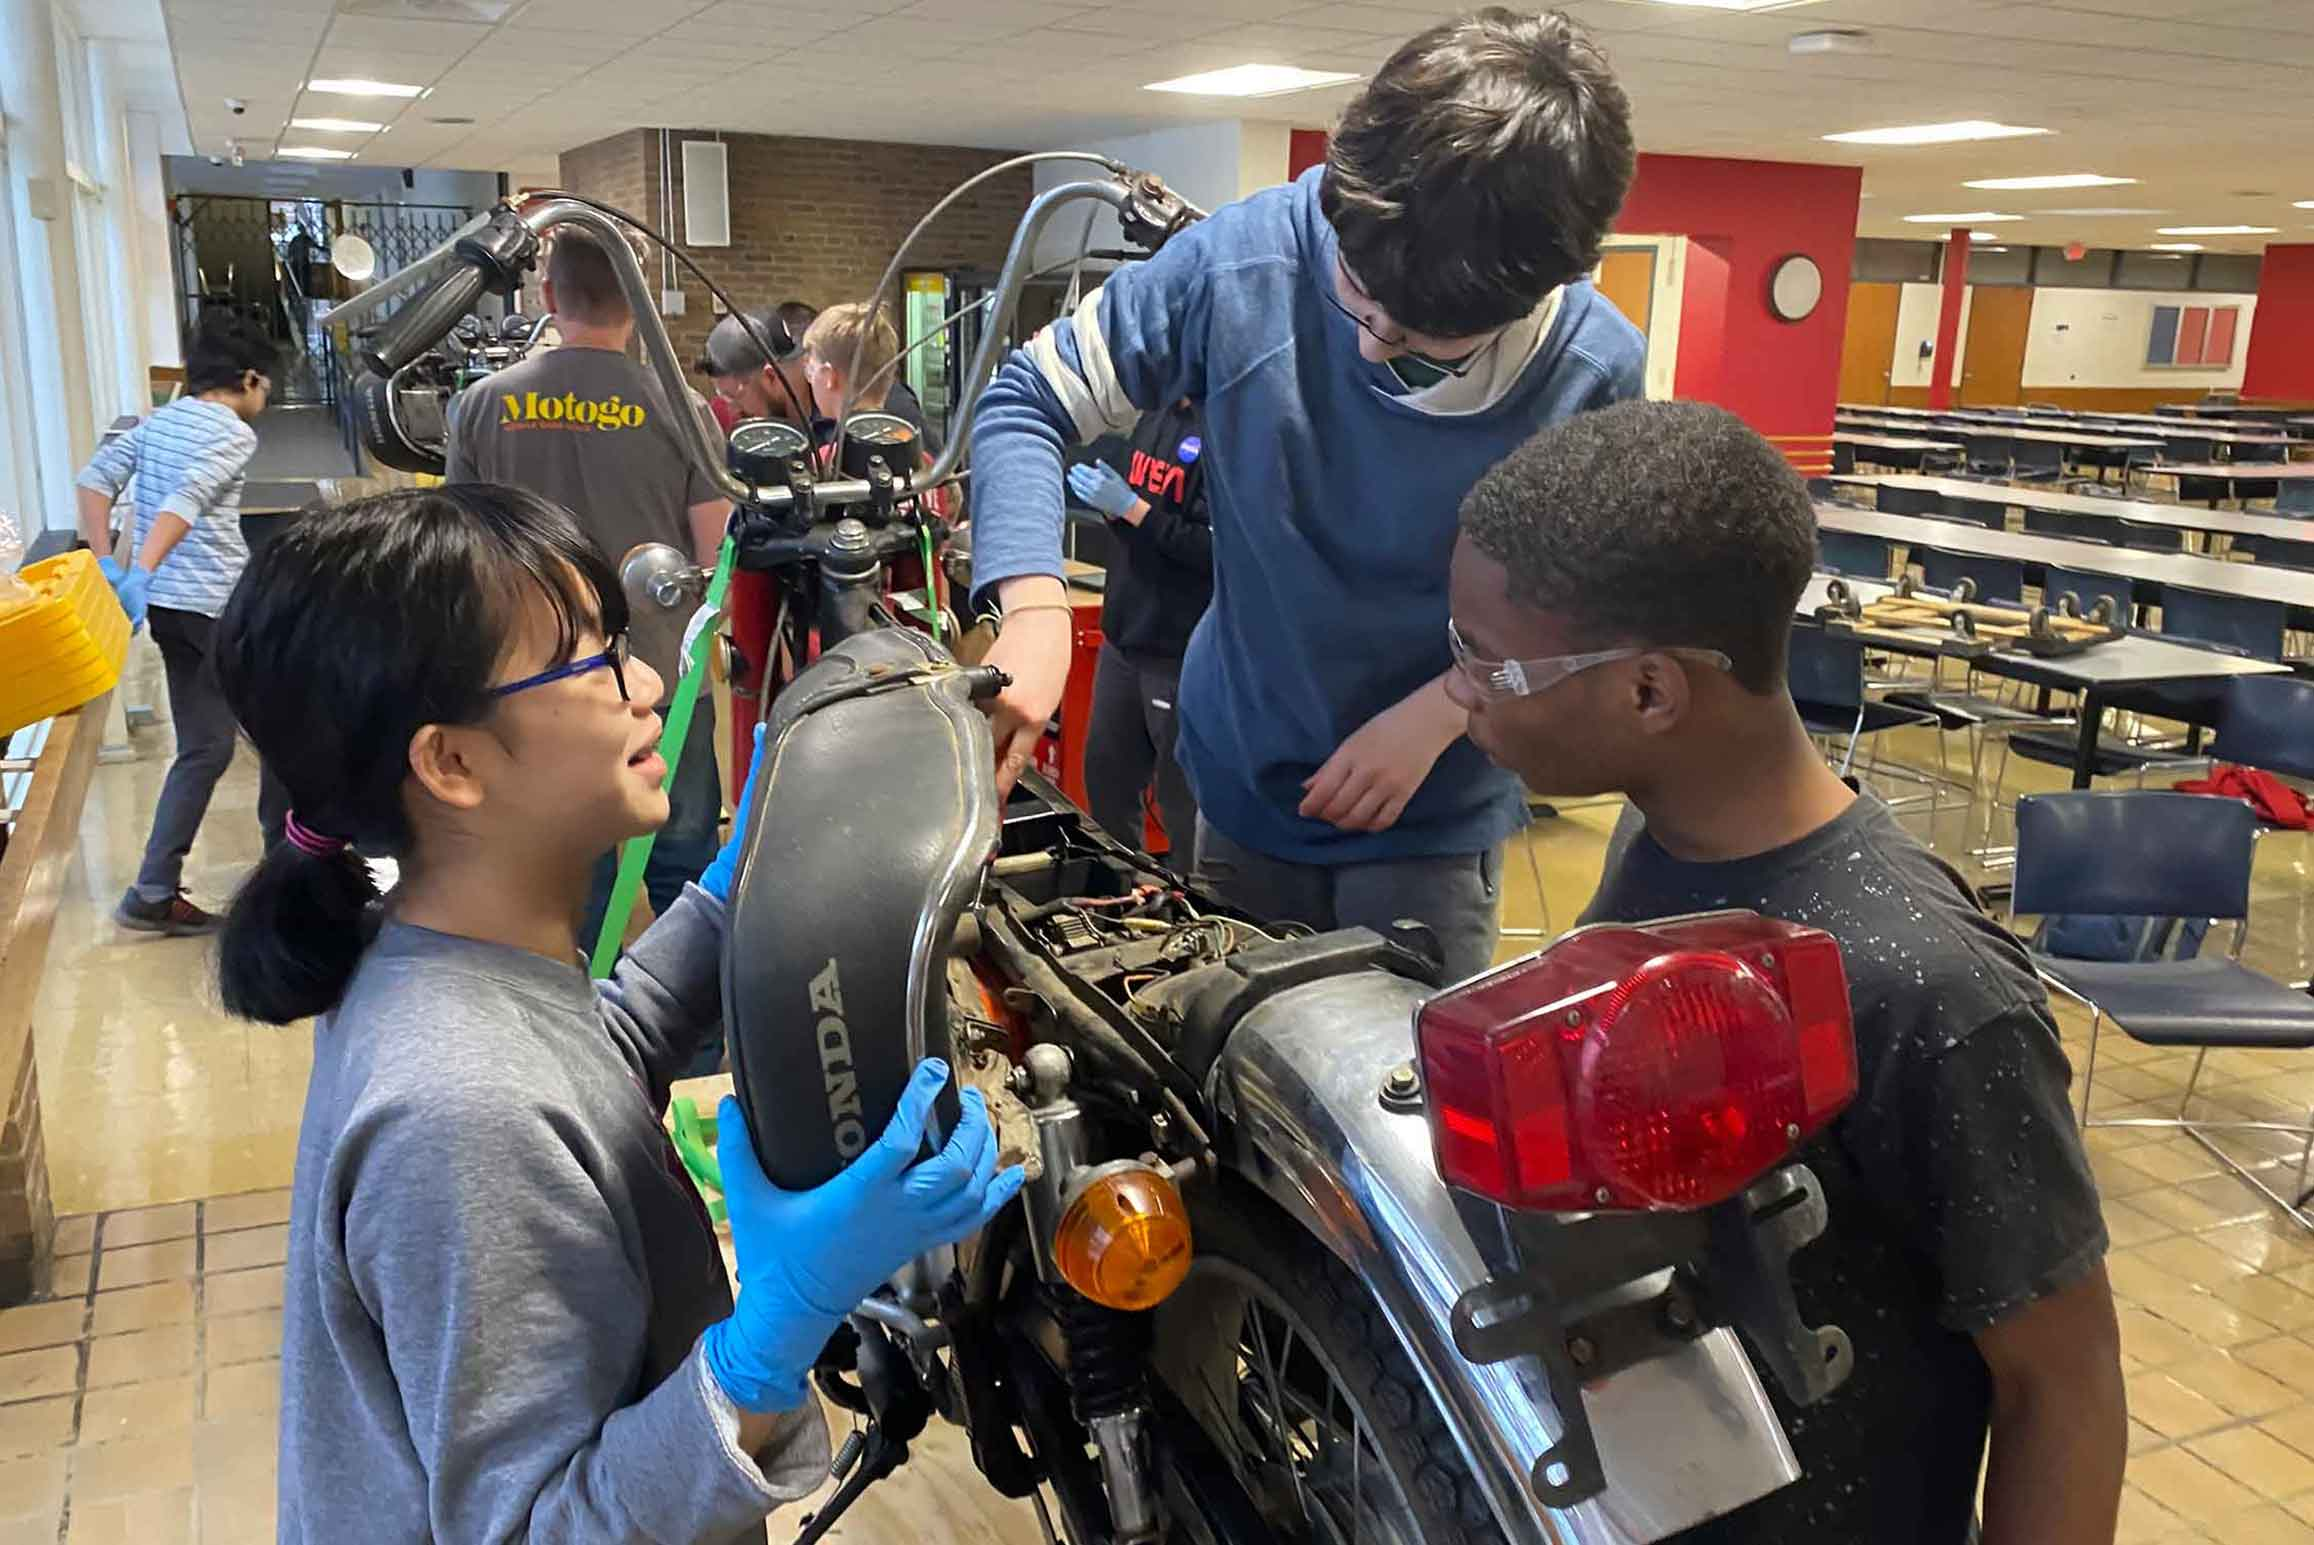 MS students fixing motorcycle